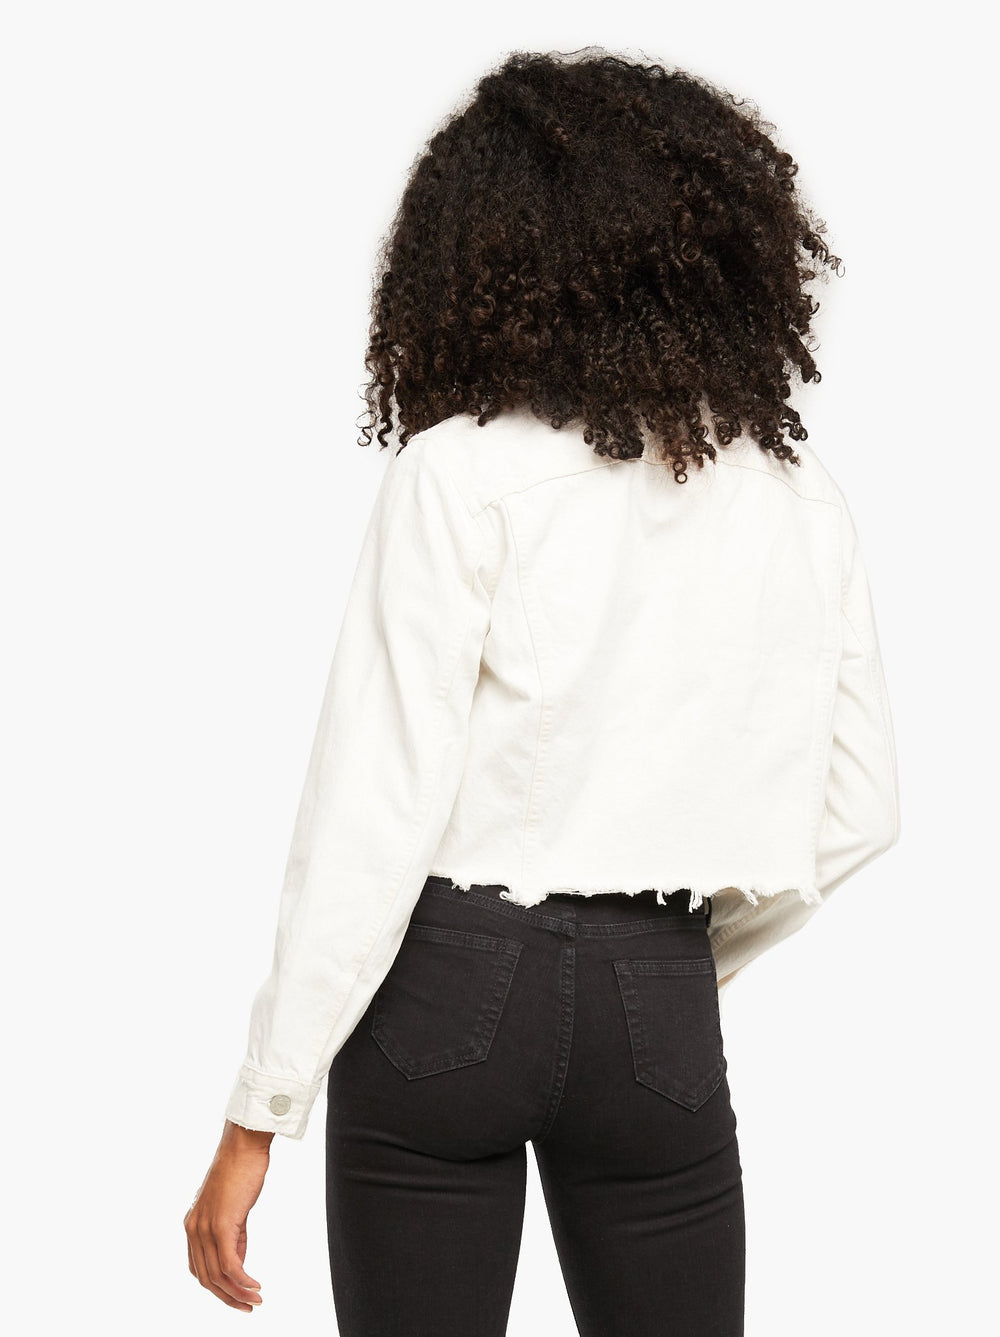 The Marissa Cropped Jacket